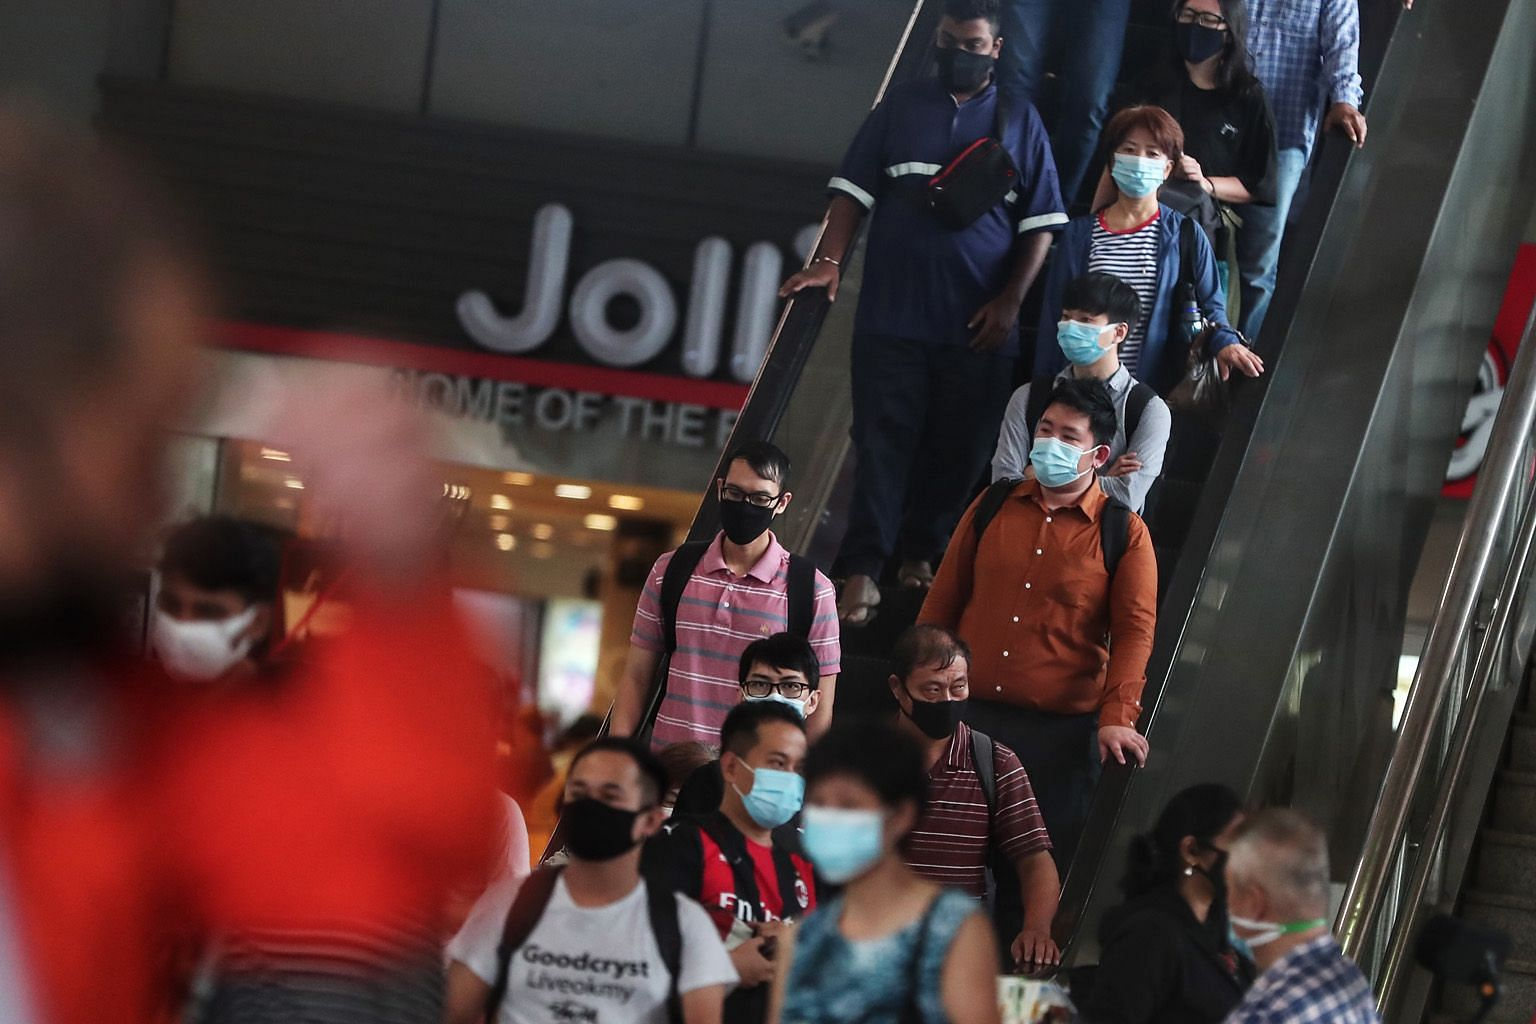 Despite everything we have endured in the fight against Covid-19, the end is still far away, with mask wearing continuing to be the norm and the economy taking a severe hit. And a vaccine is not the endgame. ST PHOTO: KELVIN CHNG